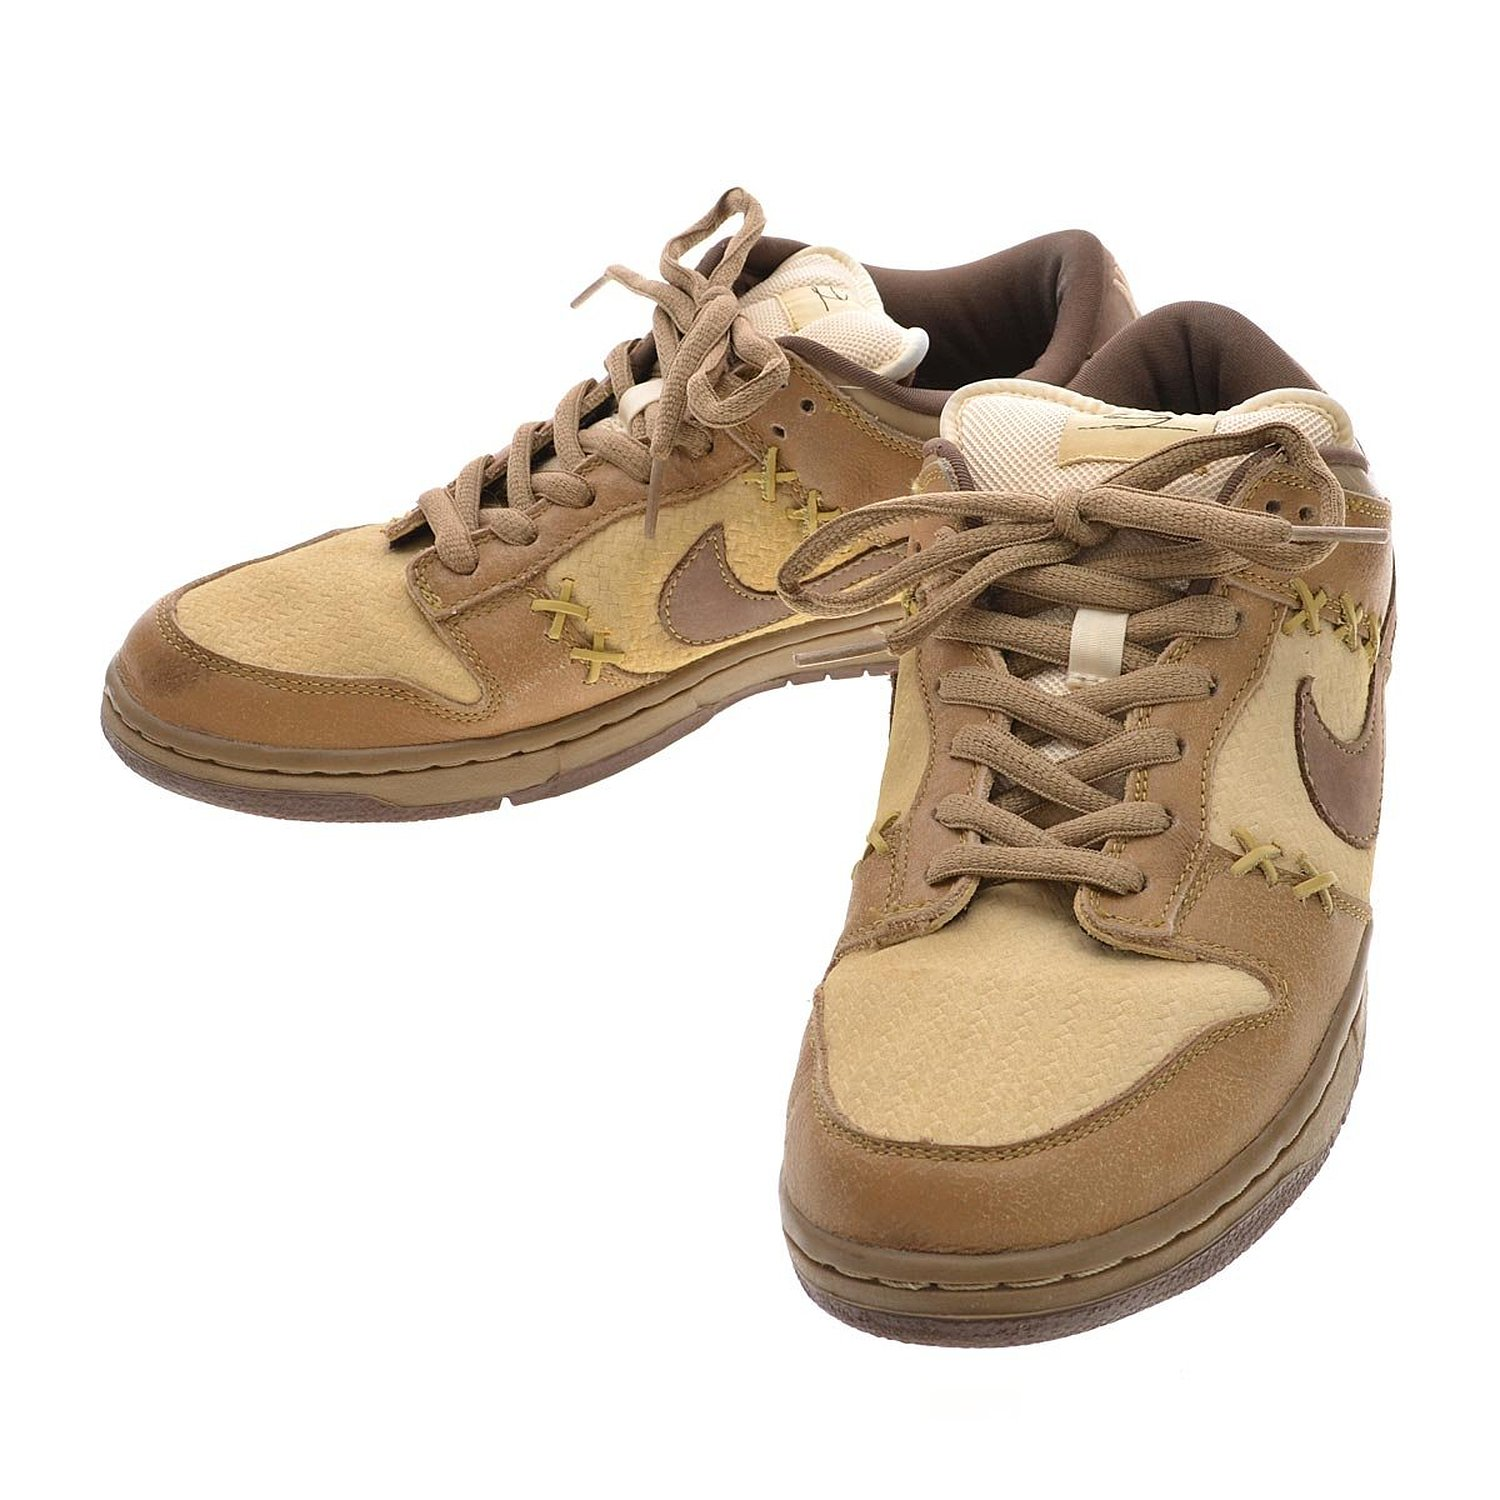 wholesale dealer f9331 c2fa6 Cheap Nike Sb Low Dunks, find Nike Sb Low Dunks deals on ...